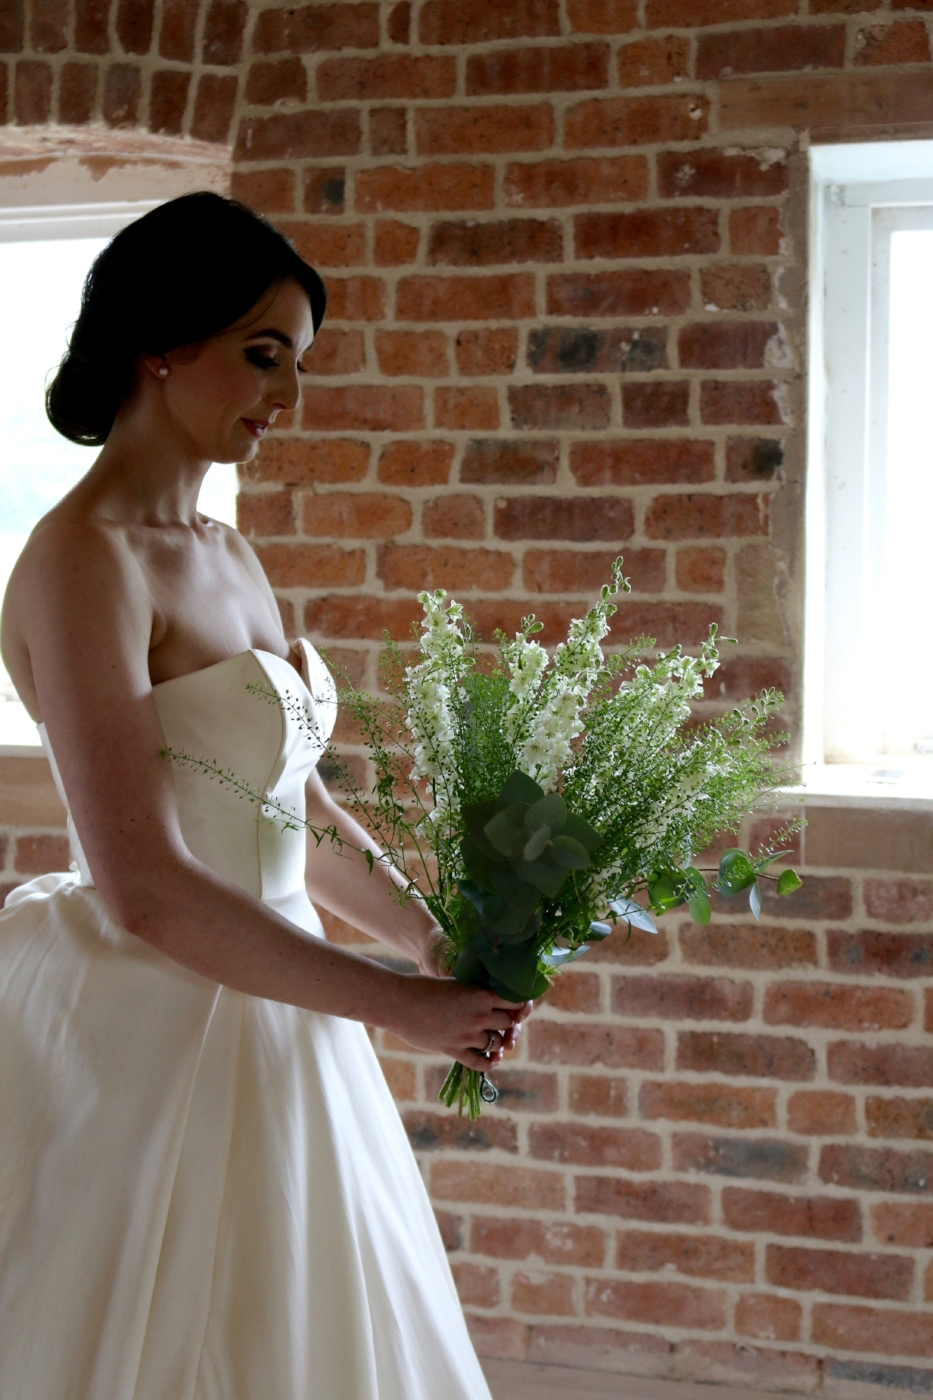 Floral design and a key member of the derbyshire wedding supplier industry